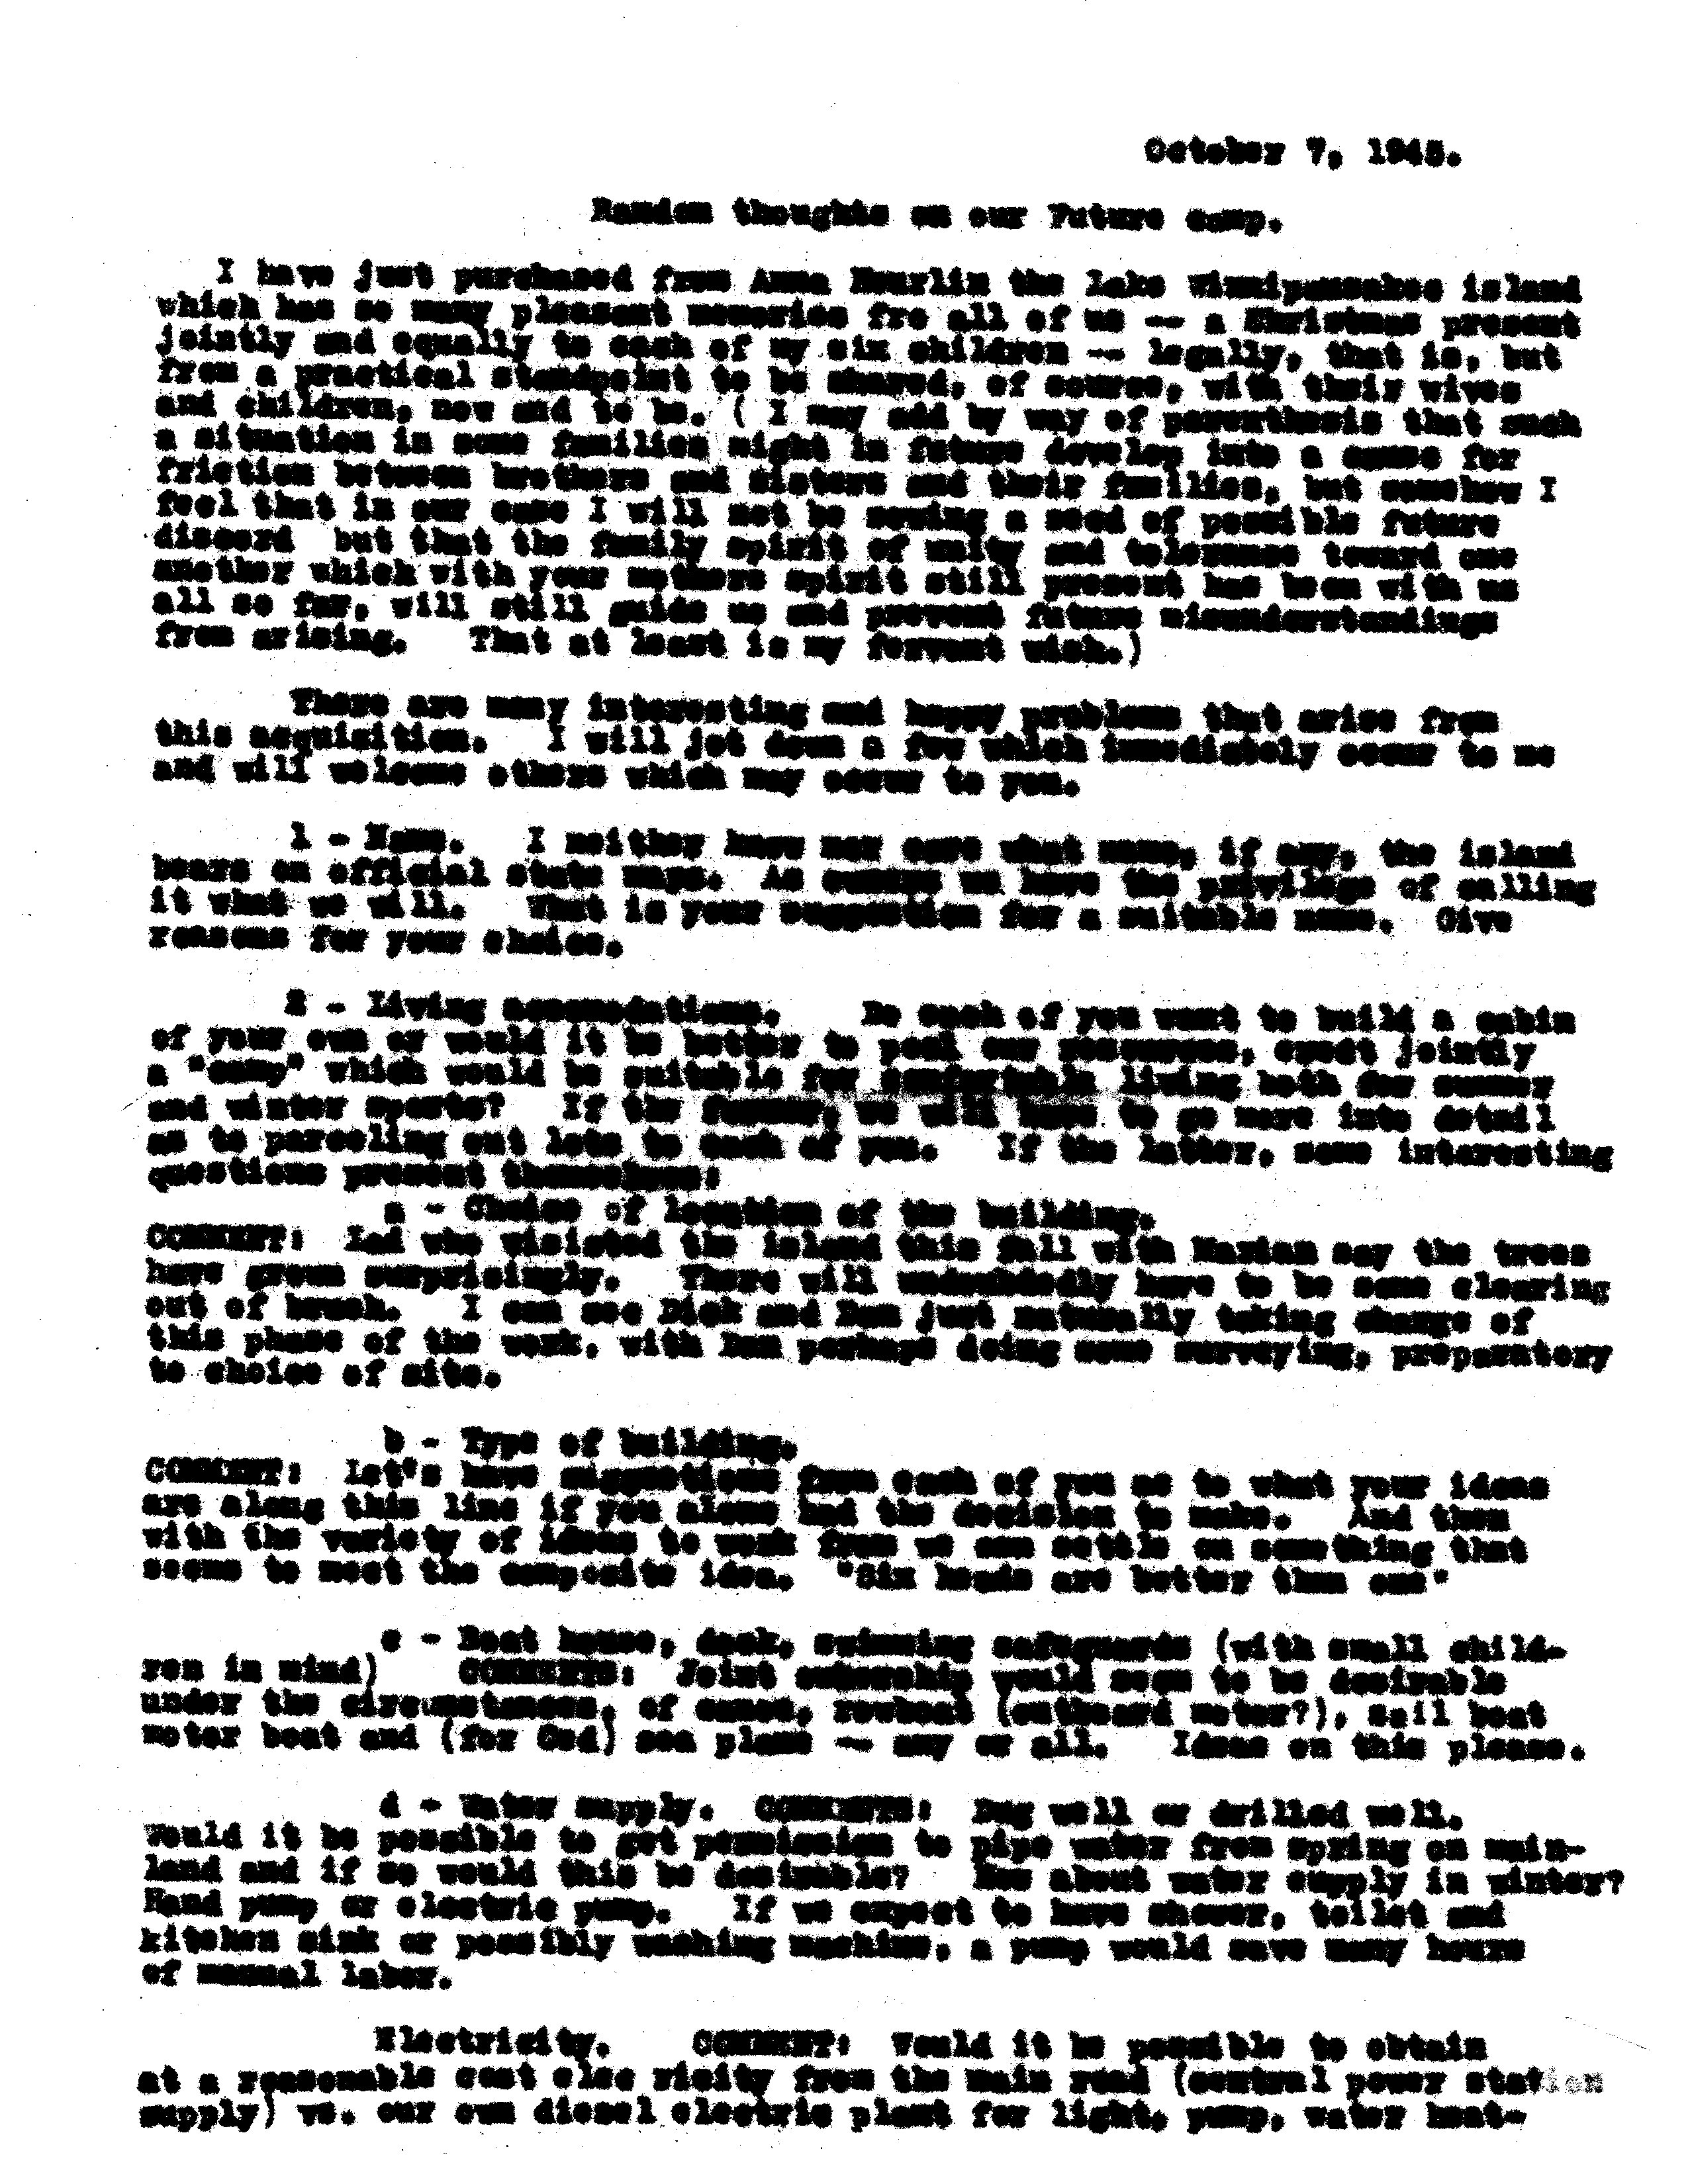 ADG - Random Thoughts on our Future Camp (1) - October 7, 1945